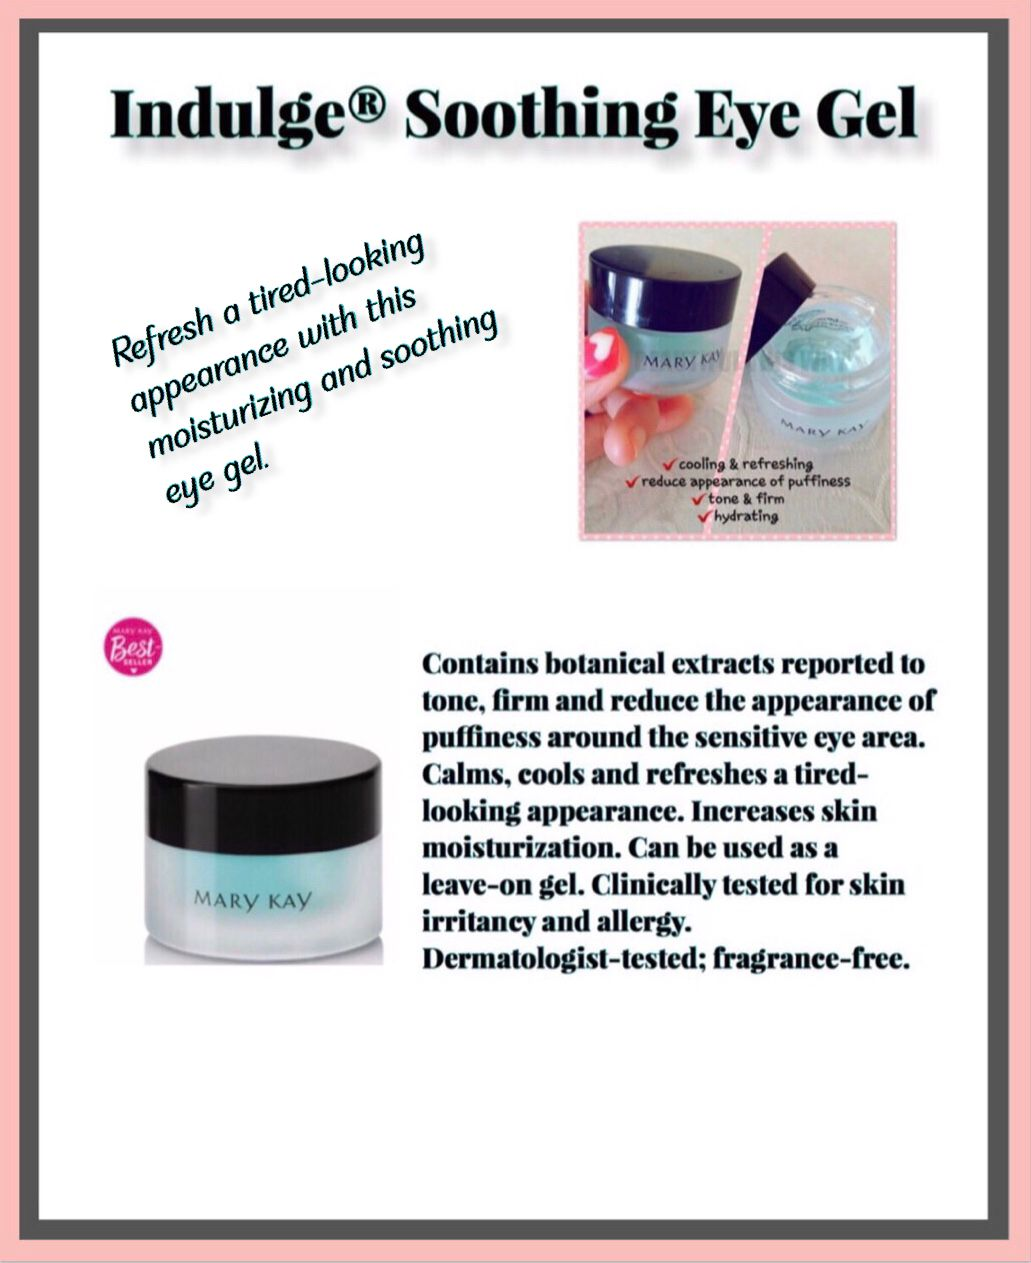 Put This Soothing Eye Gel In The Refrigerated For A Cooling Experience Mary Kay Eyes Eye Gel Mary Kay Skin Care